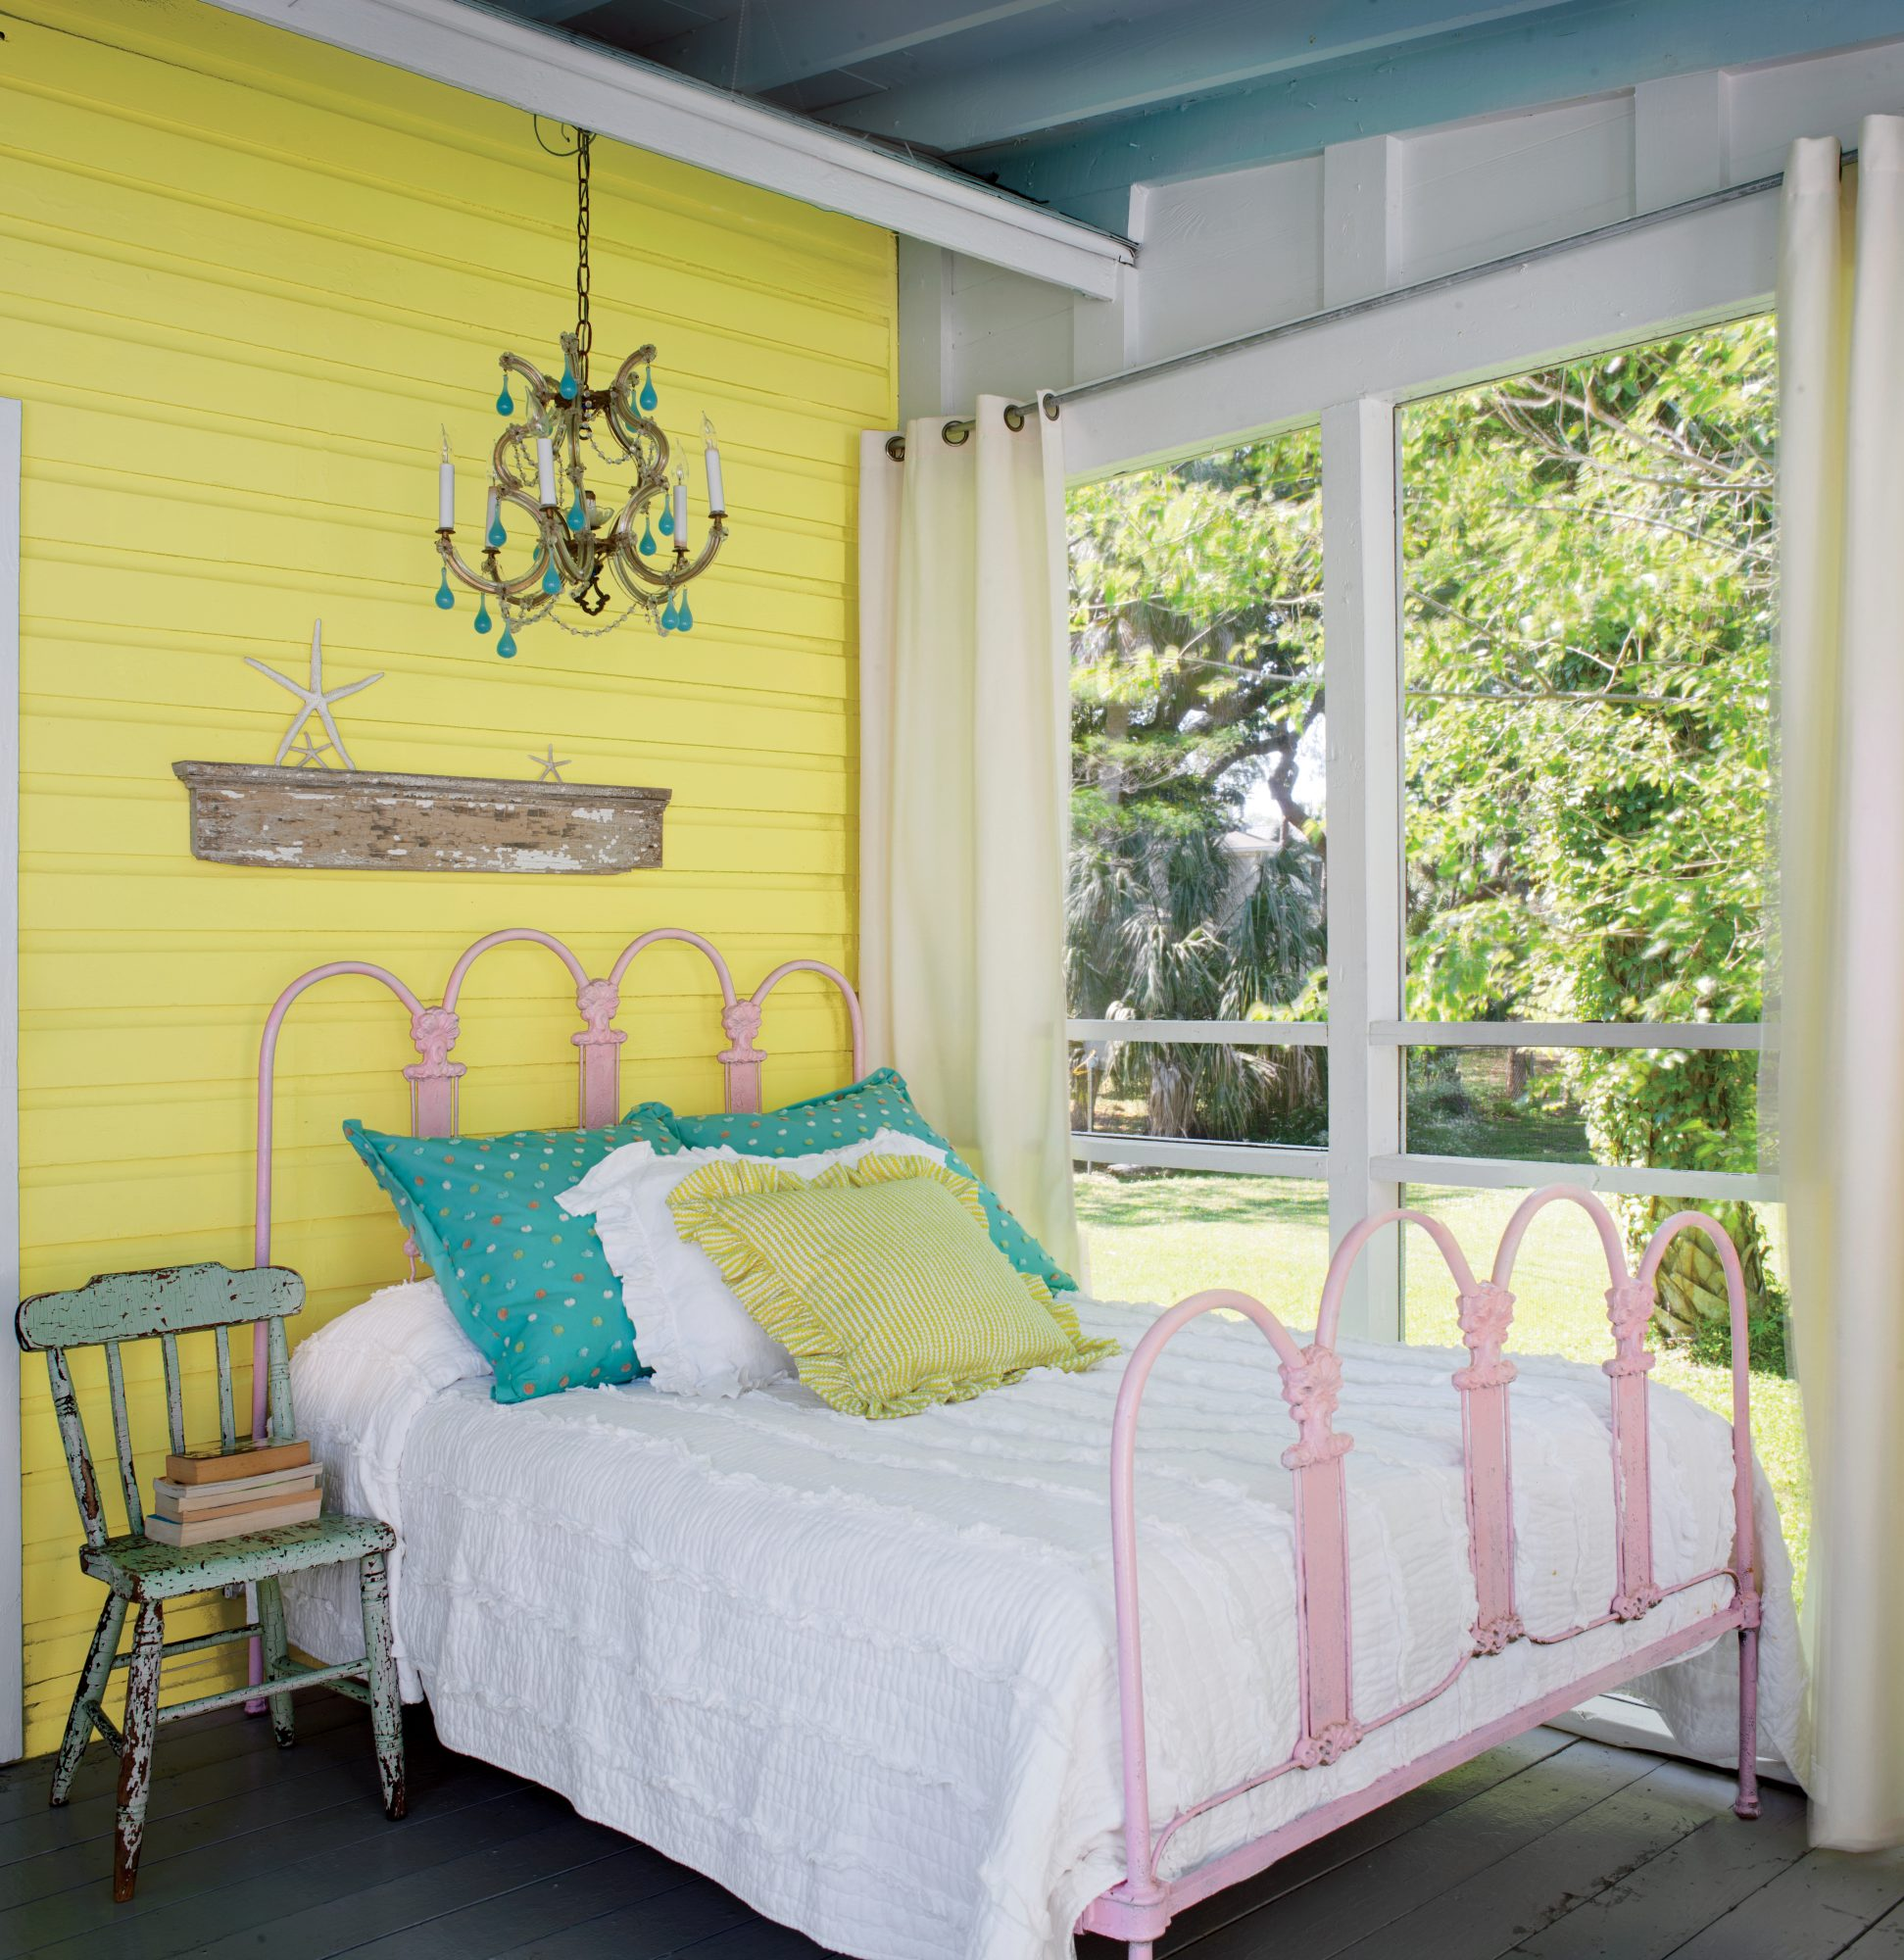 Designer Jane Coslick converted this sunshine-yellow beach cottage's original veranda into a sweet dreams-worthy sleeping porch. Rustic elements boast unexpected touches, from the antique iron bed painted pink to the weathered chair used as storage for bo